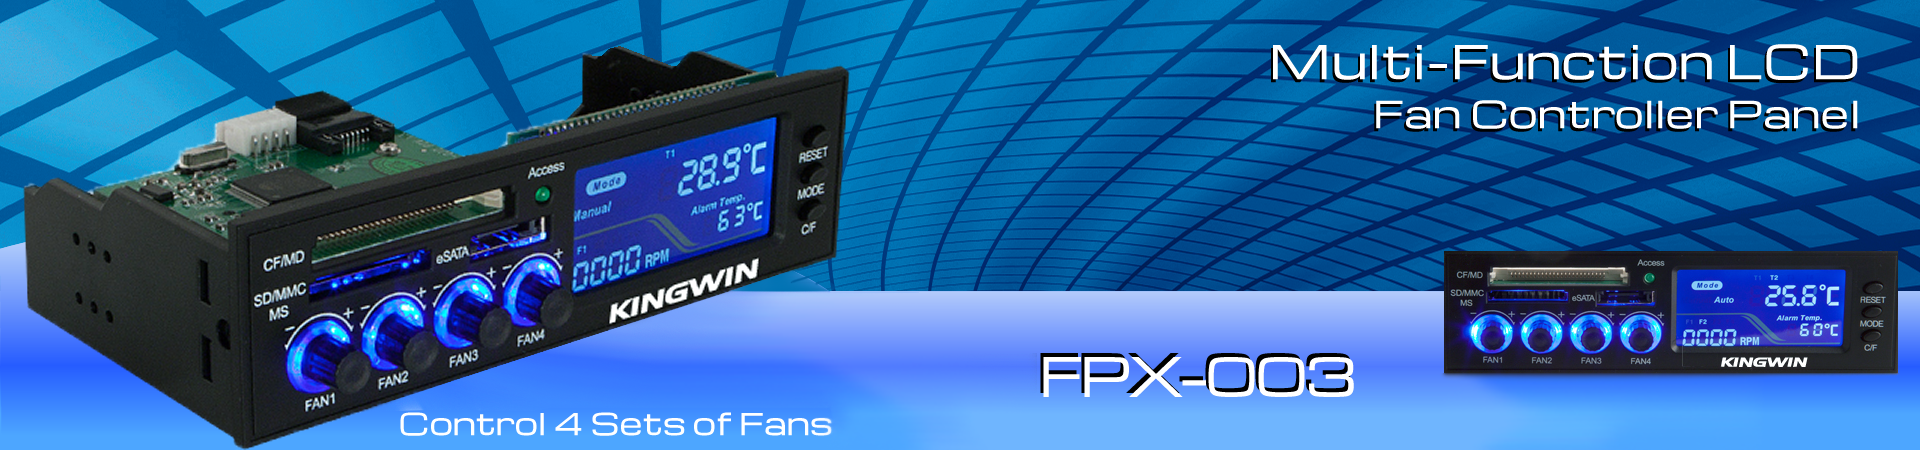 FPX-003-Banner.fw